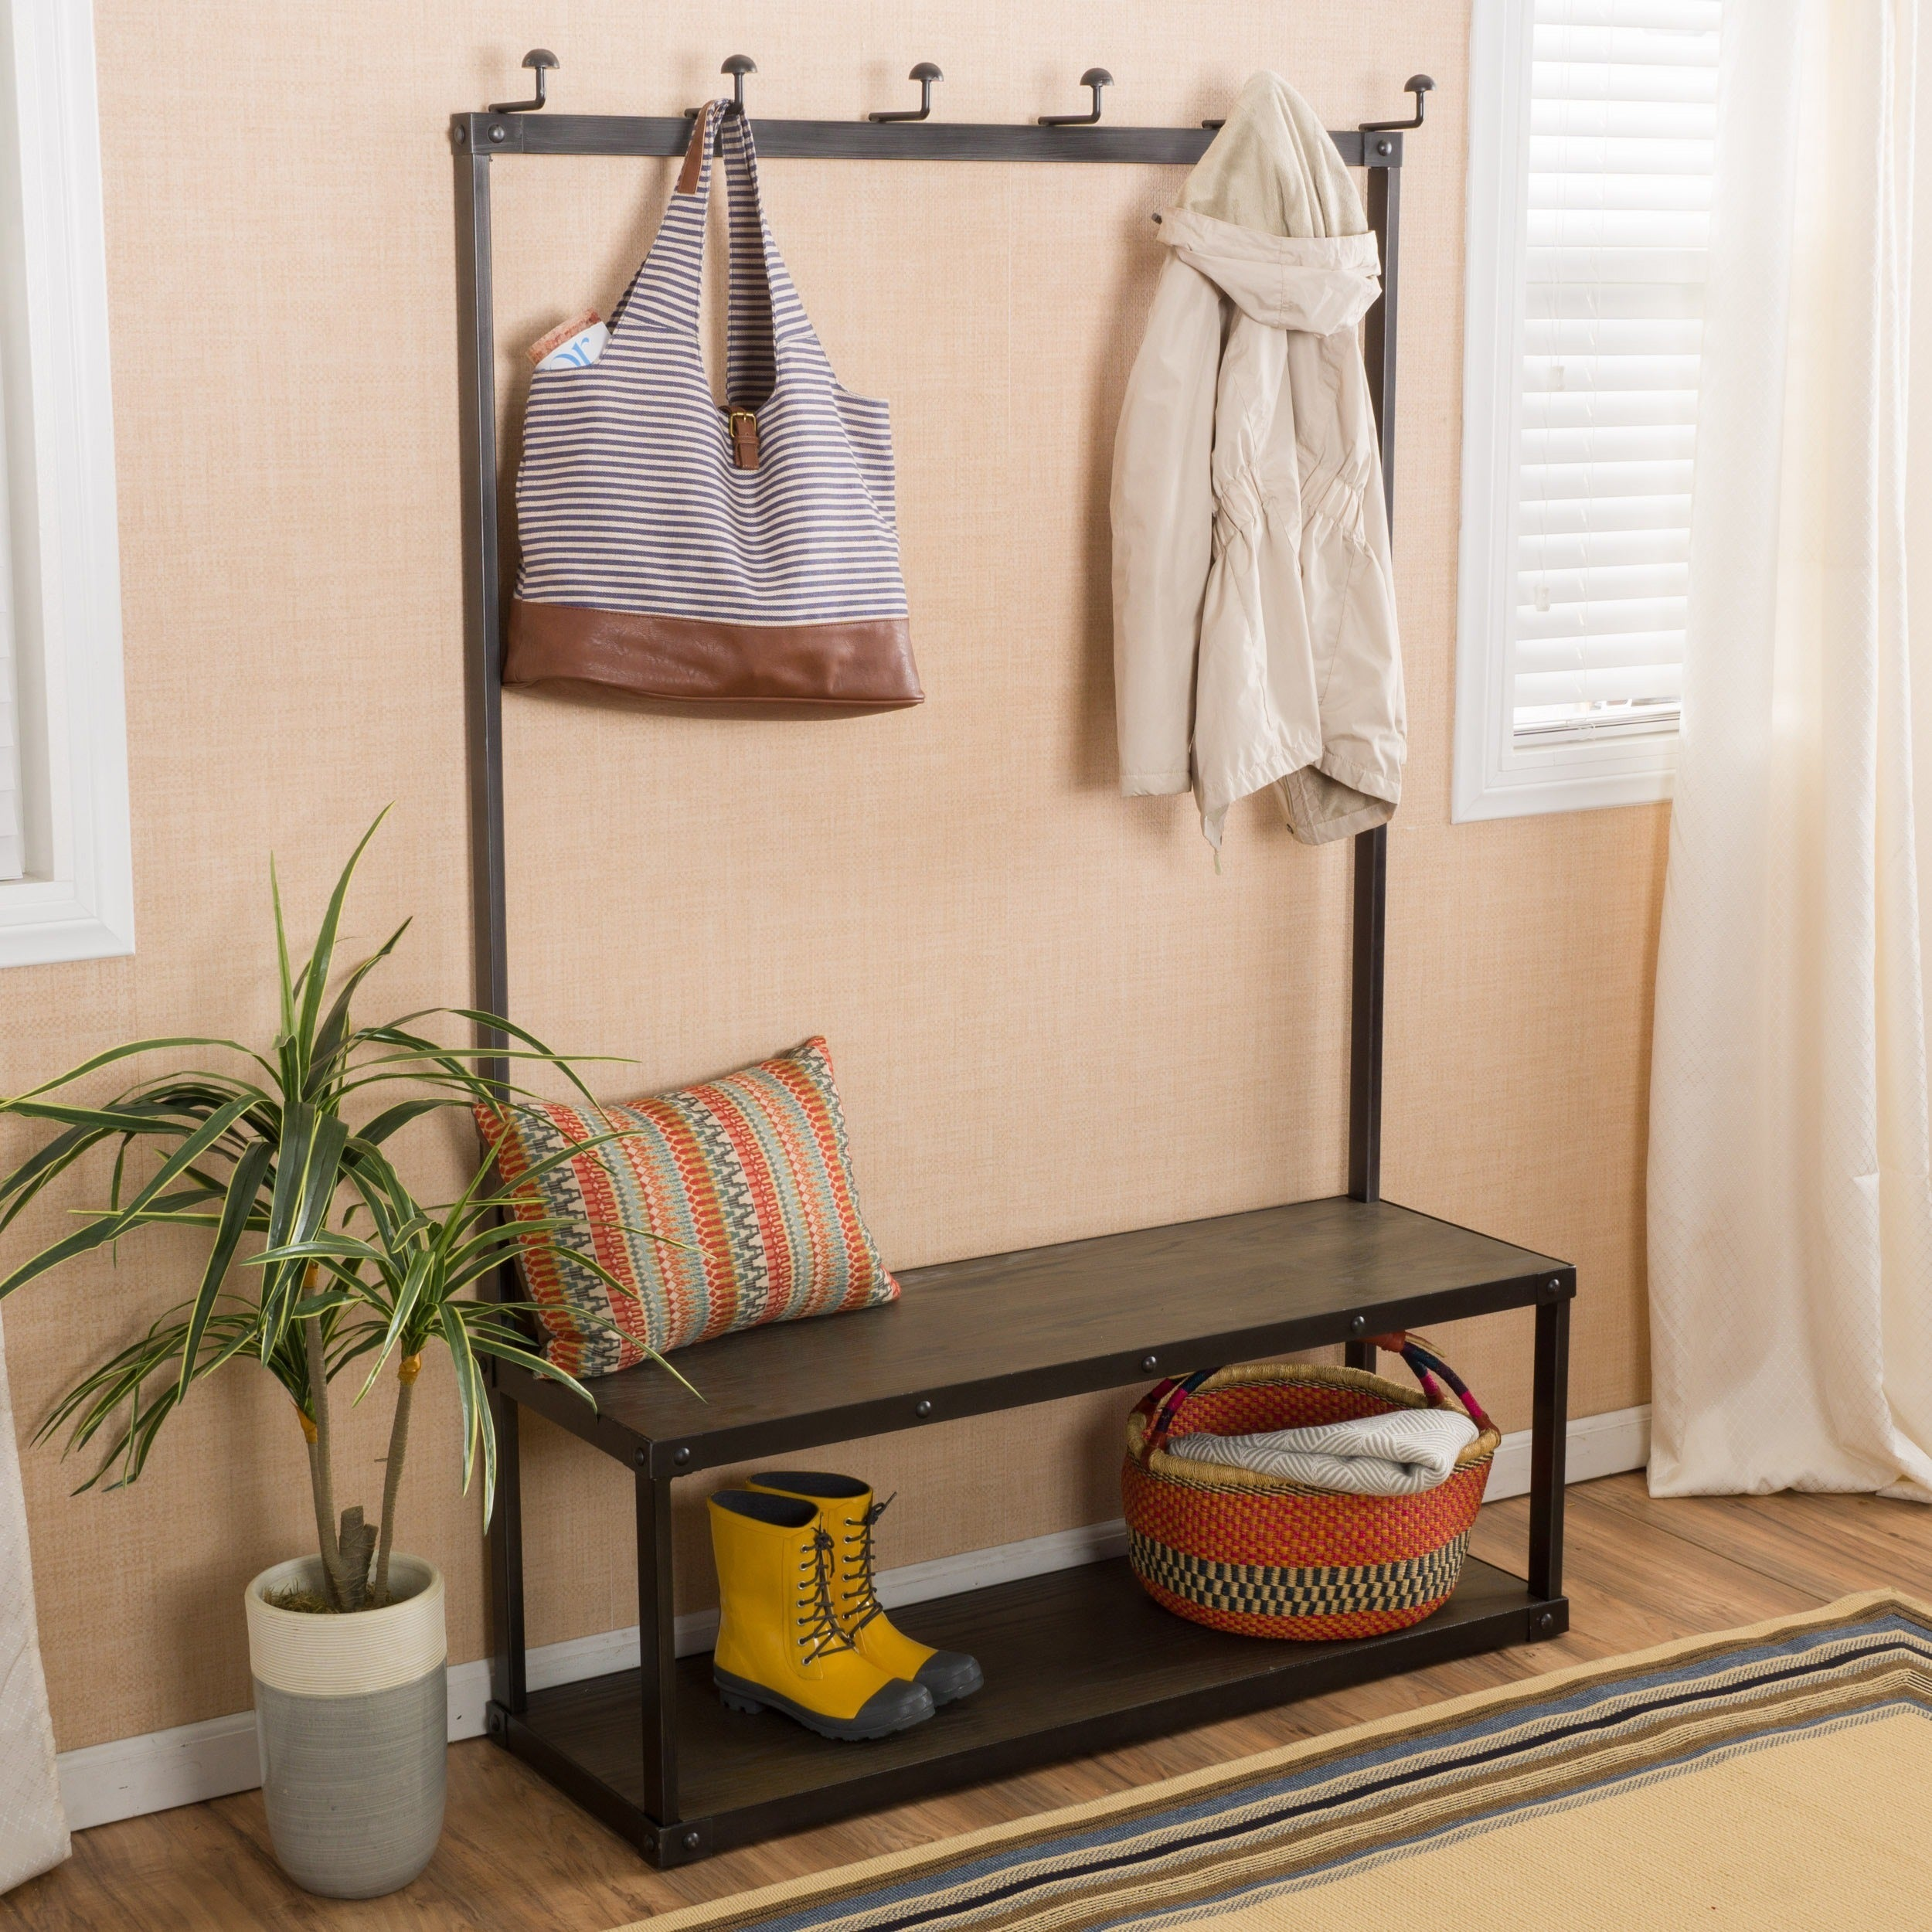 Shop Vigo Entry Bench With Coat Rack By Christopher Knight Home On Sale Overstock 11416848